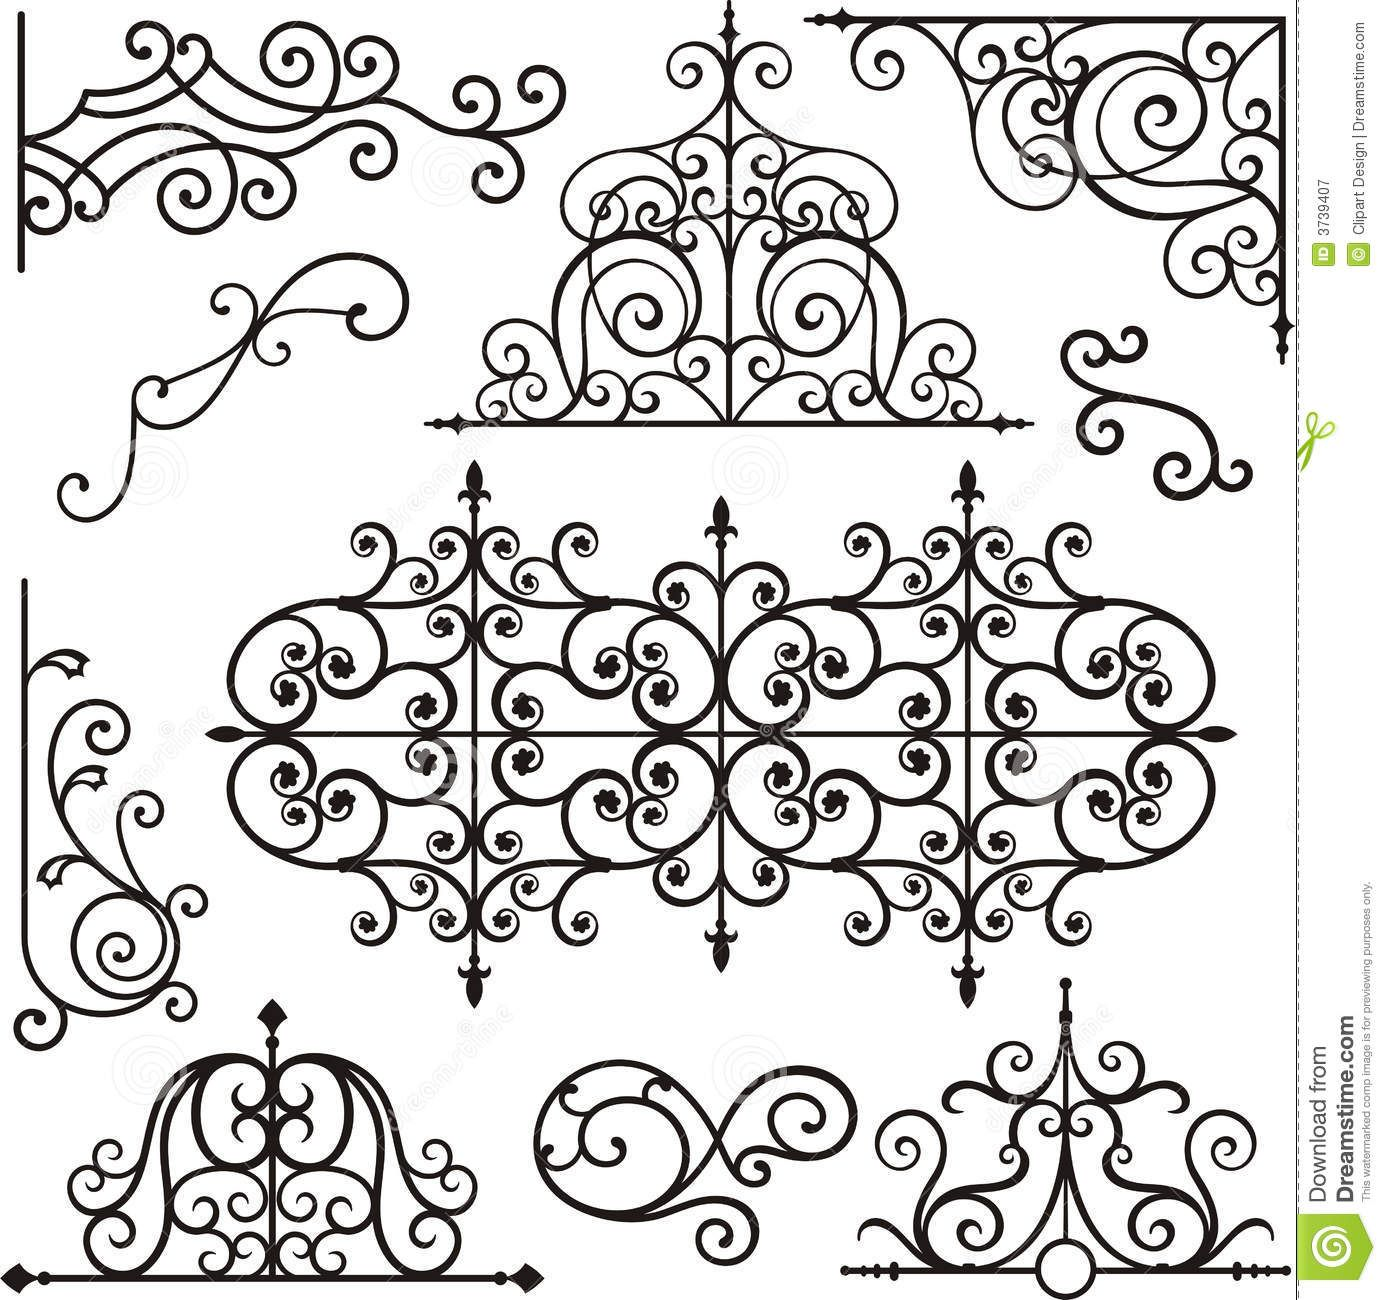 Wrough Iron Ornaments Download From Over 63 Million High Quality Stock Photos Images Vectors Sign Up For Wrought Iron Design Wrought Iron Style Faux Iron